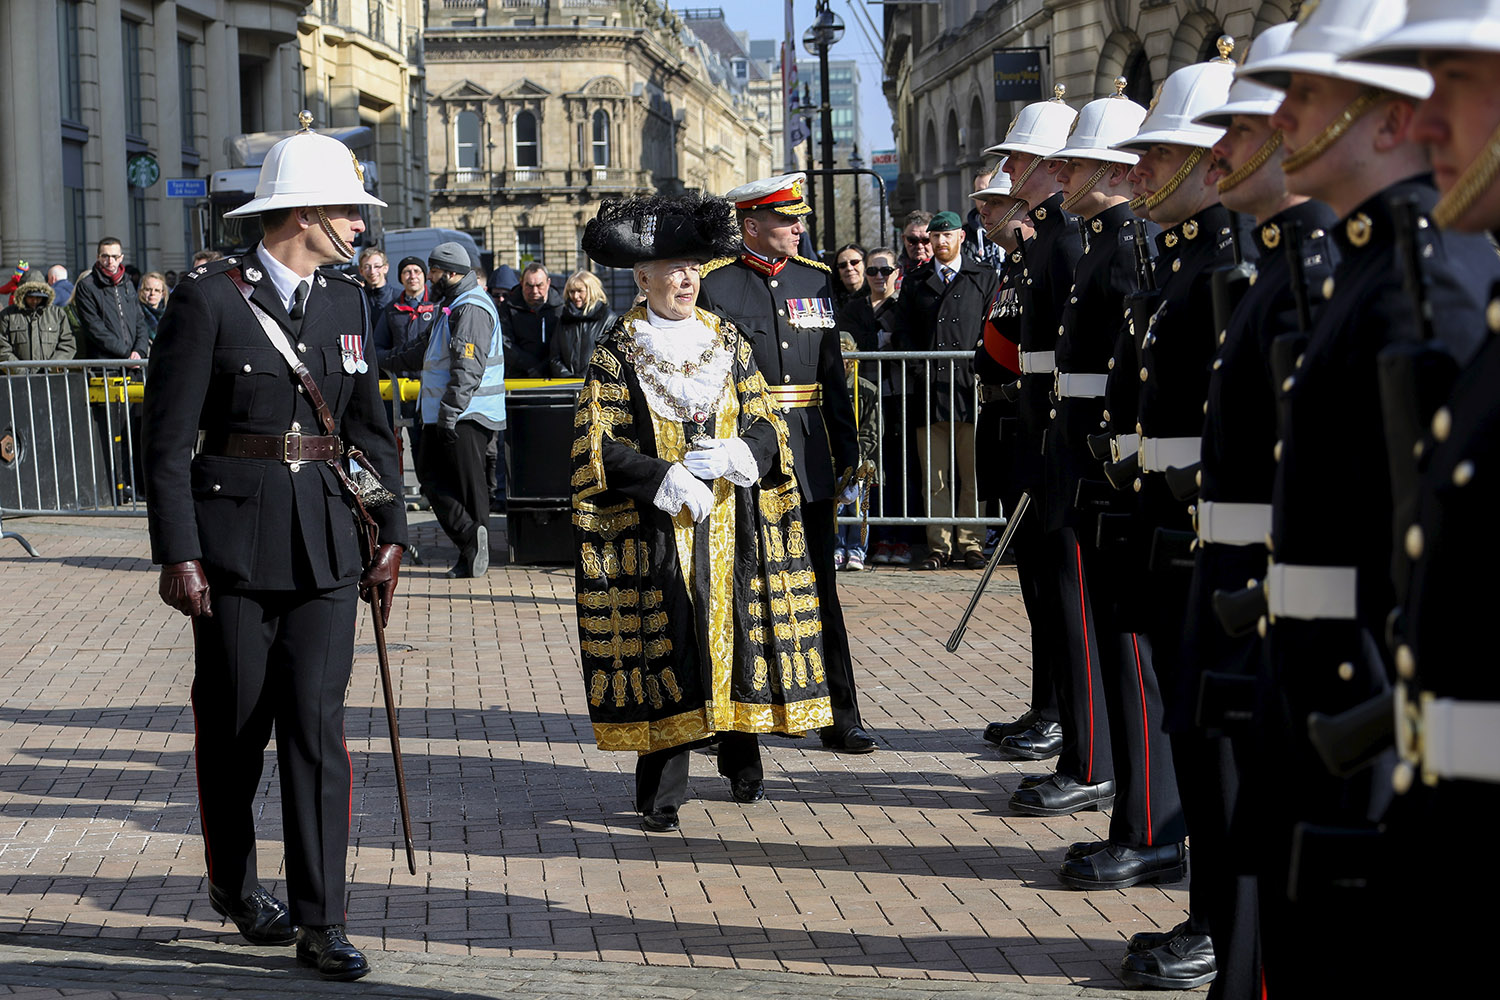 Birmingham bestows special honour on the Royal Marines